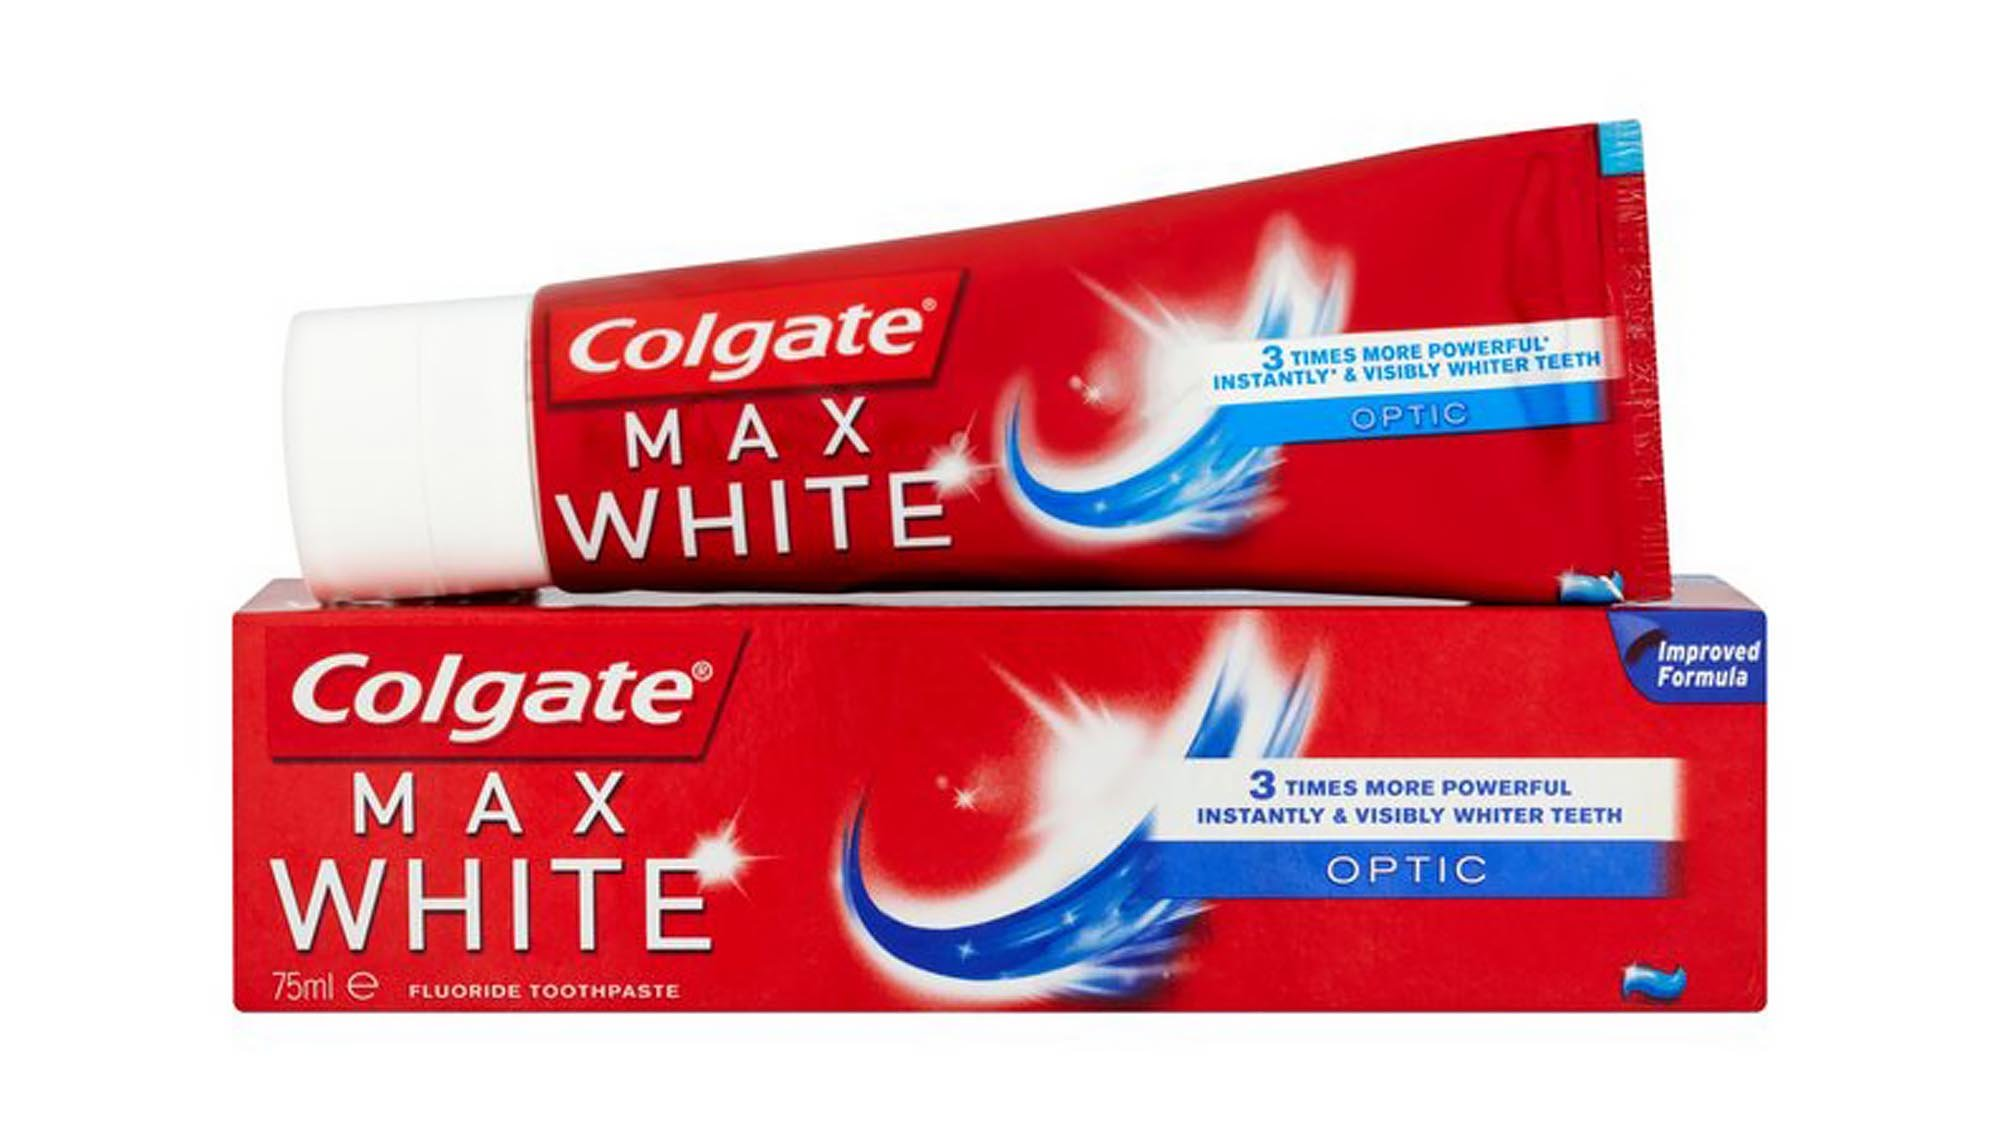 Why is colgate the best toothpaste